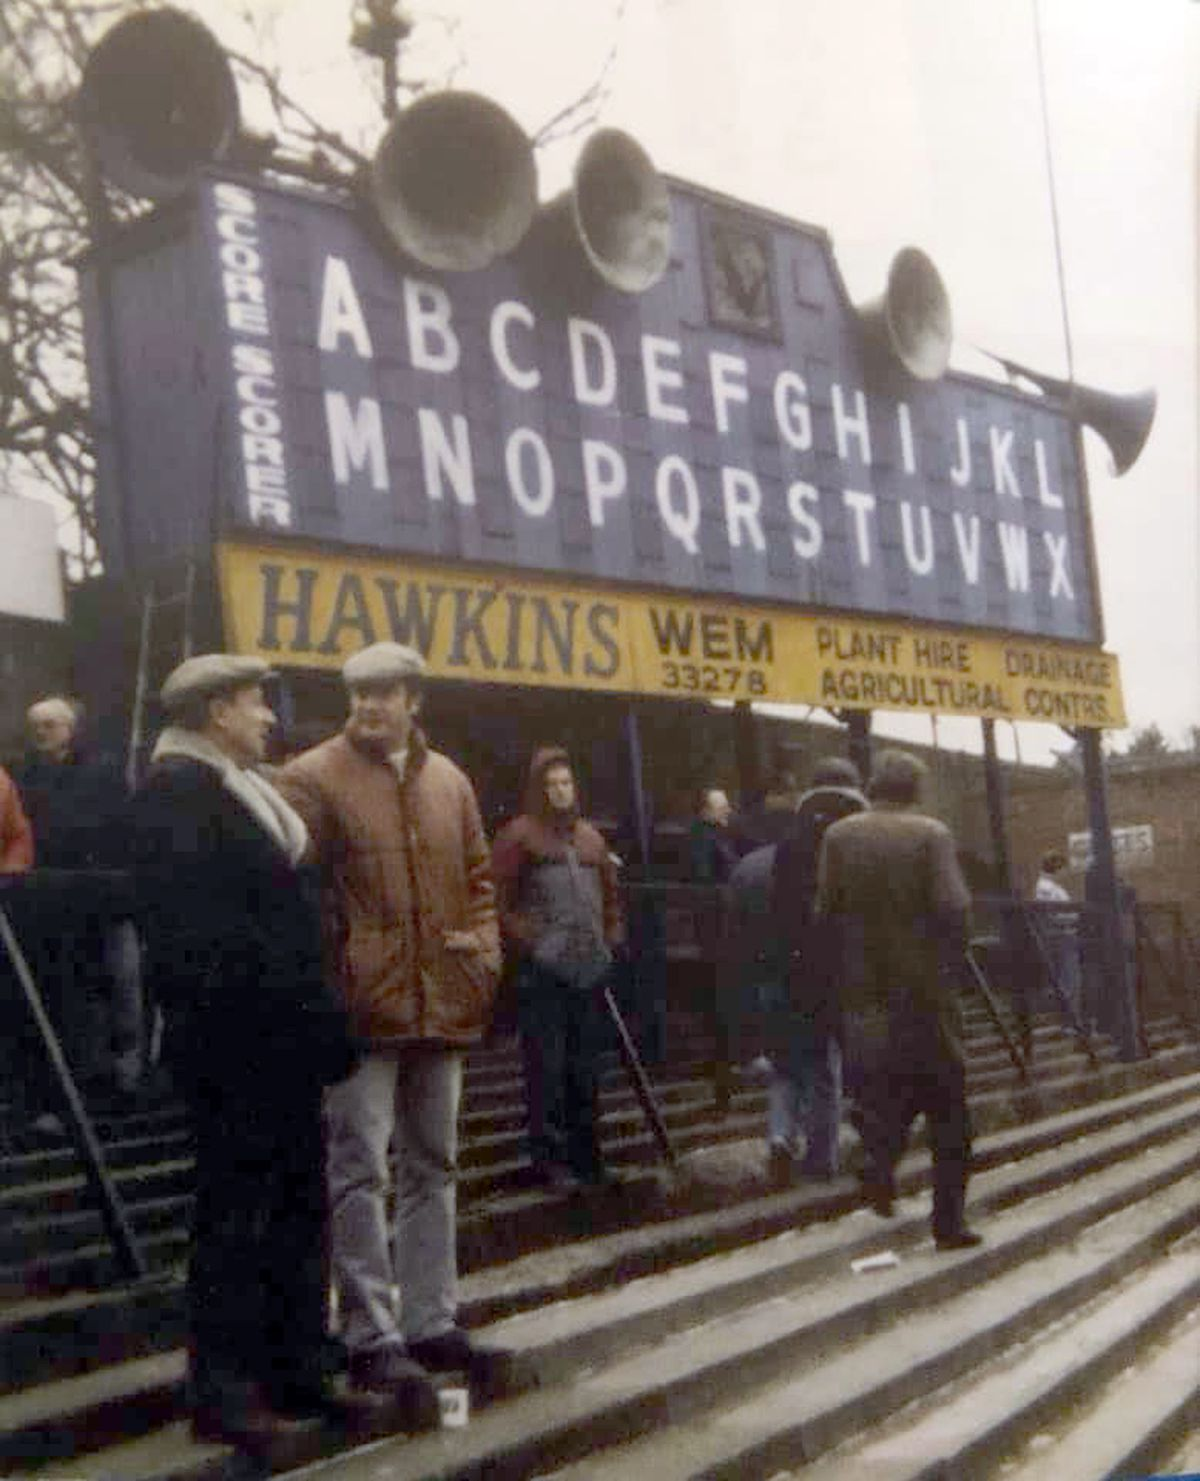 The iconic half time scoreboard at the Gay Meadow